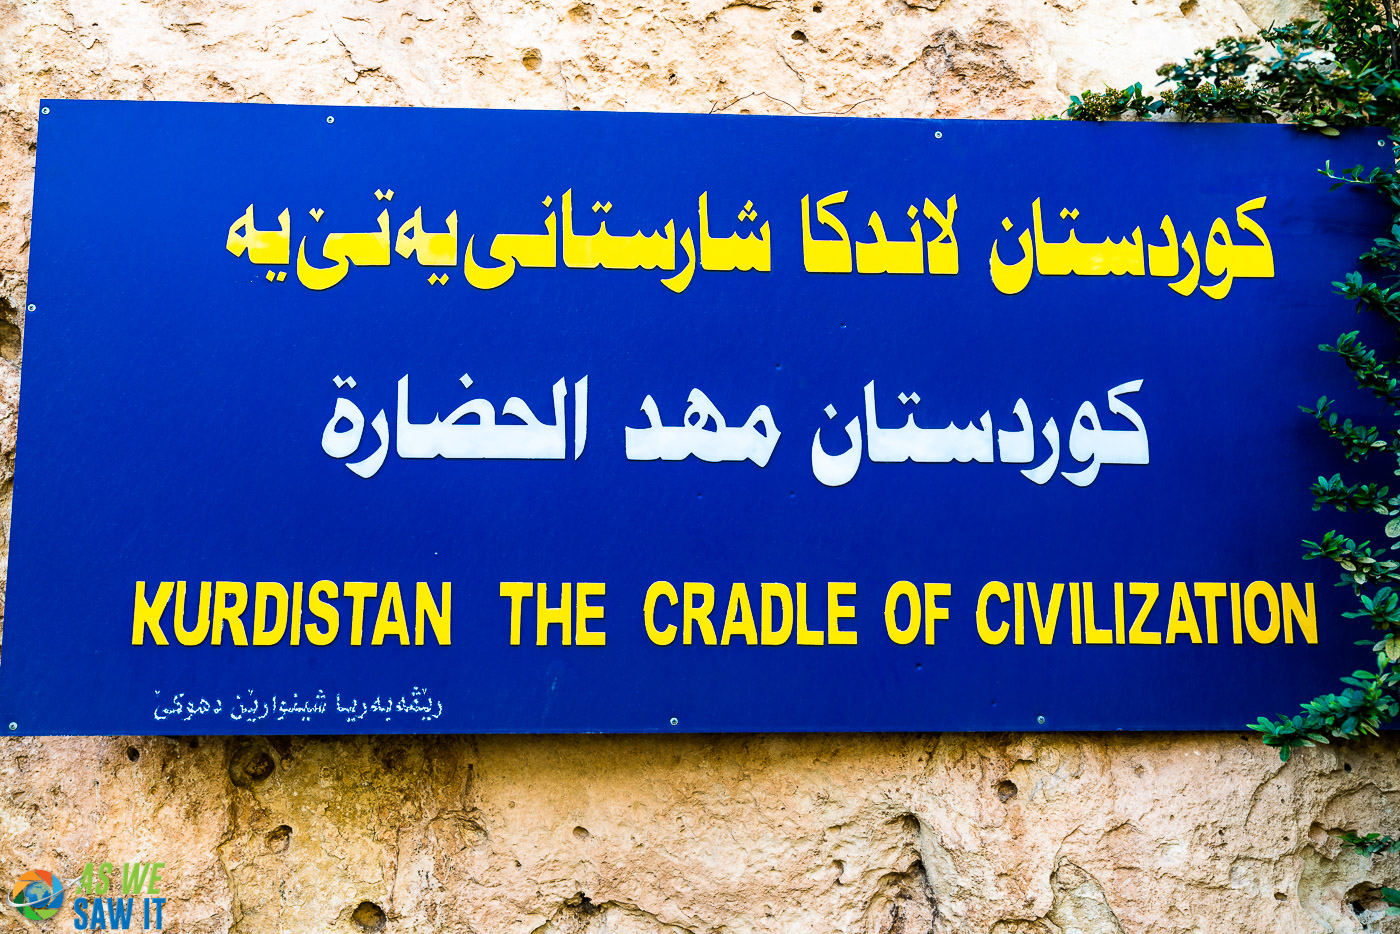 Iraqi Kurdistan photo tour - northern Iraq is the cradle of civilization